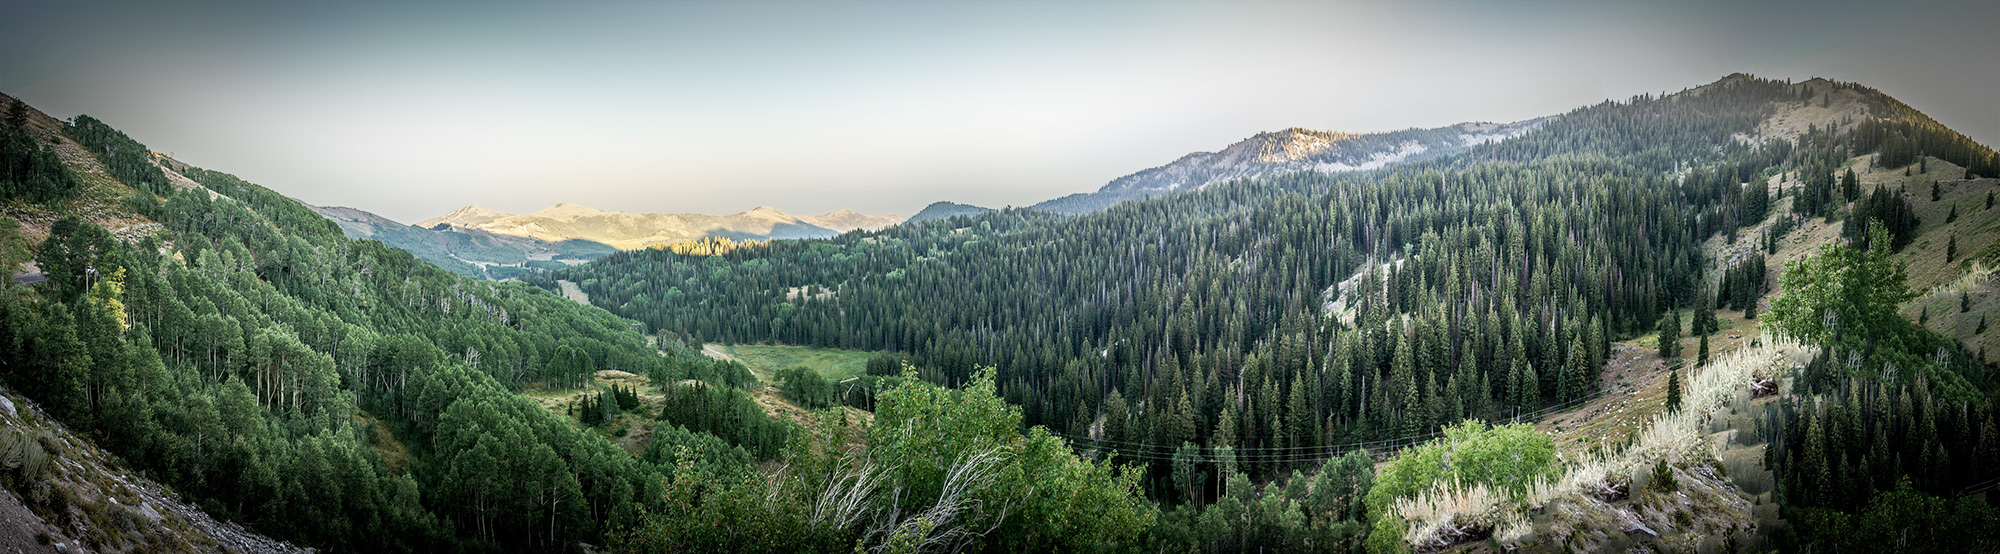 Sweeping Panorama of Park City's Secluded Hiking Trails